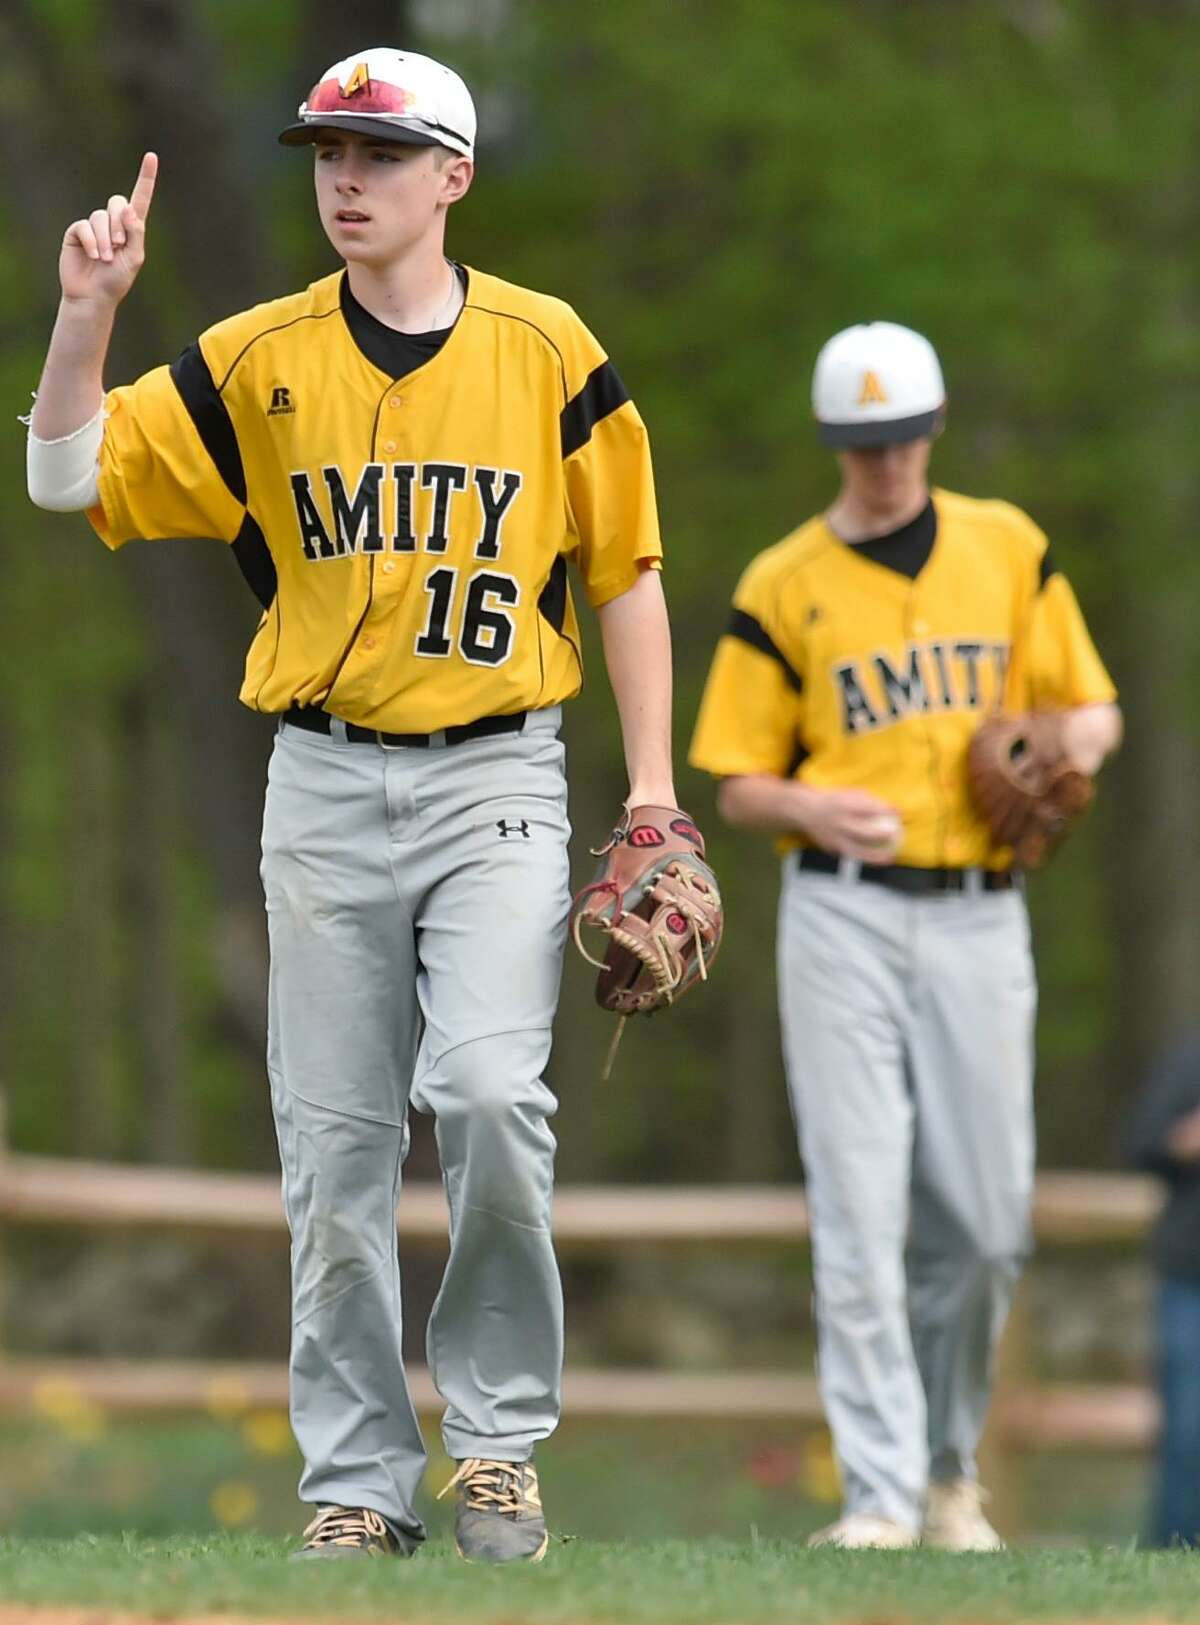 Woodbridge, Connecticut -Monday, May 5, 2018: Amity H.S. baseball vs. Daniel Hand H.S. at Amity H.S. Amity H.S. defeated Hand H.S. 4-3.